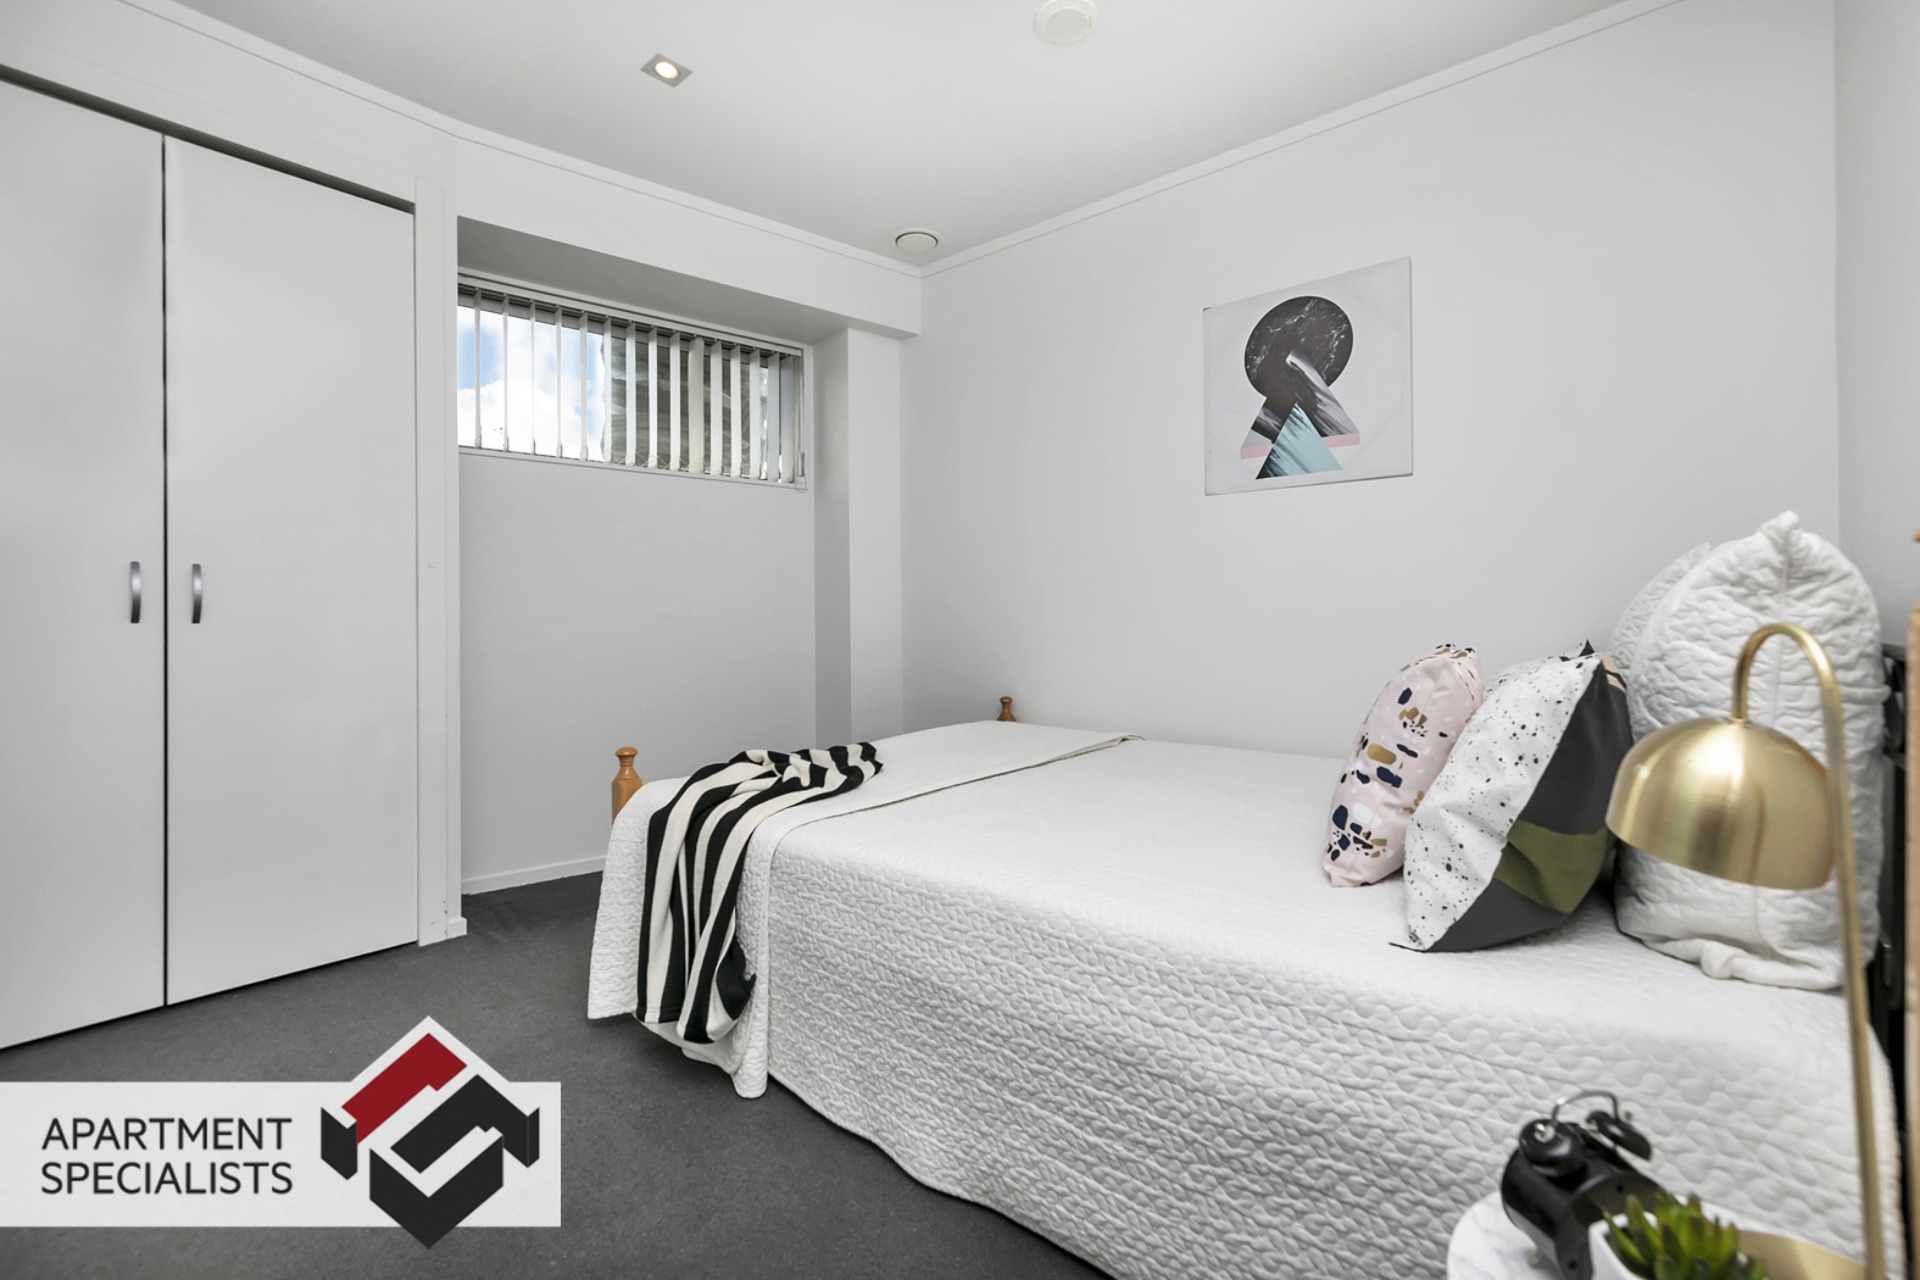 2 | 207 Federal Street, City Centre | Apartment Specialists